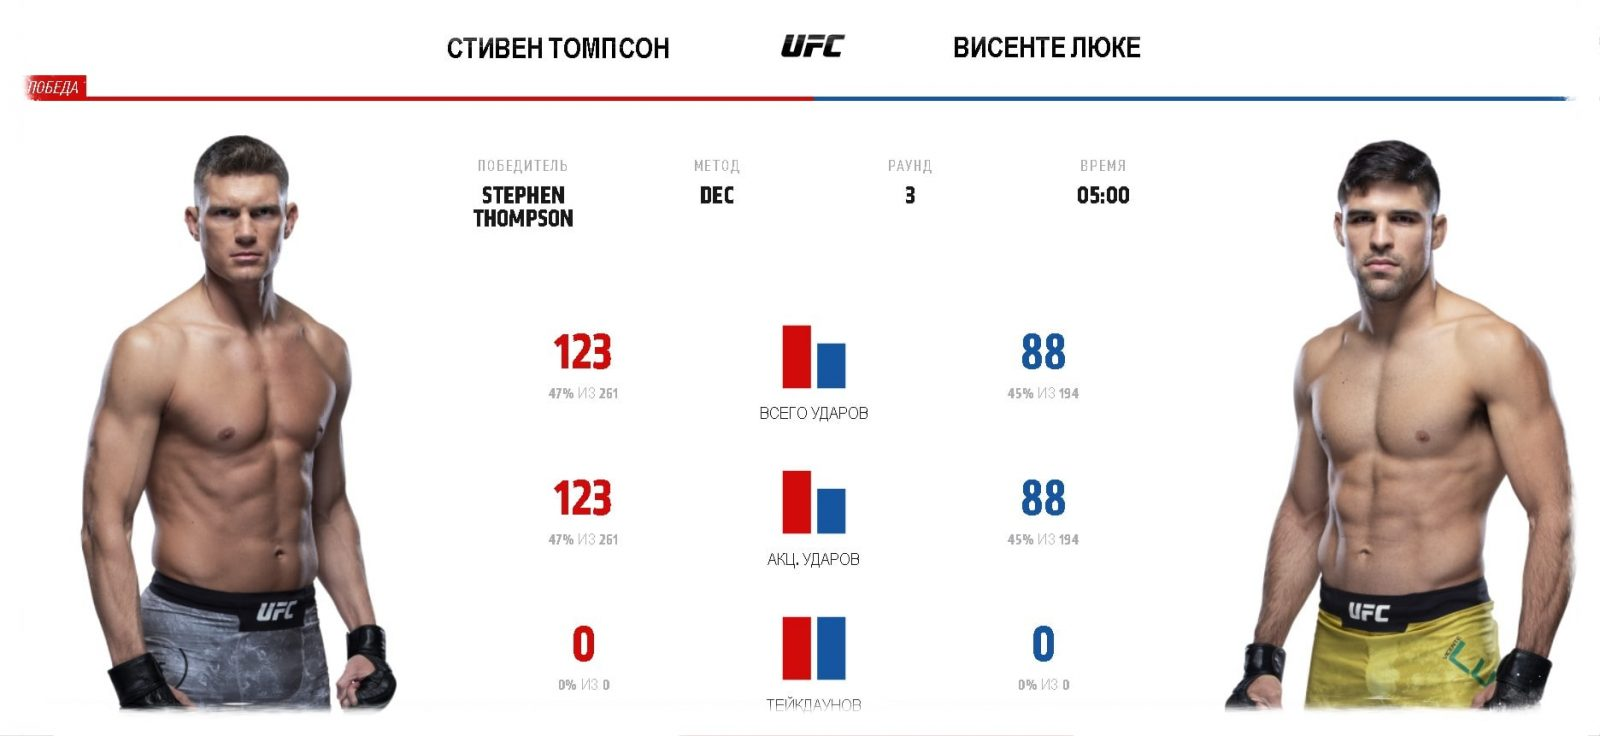 video-boya-stiven-tompson-visente-luke-ufc-244